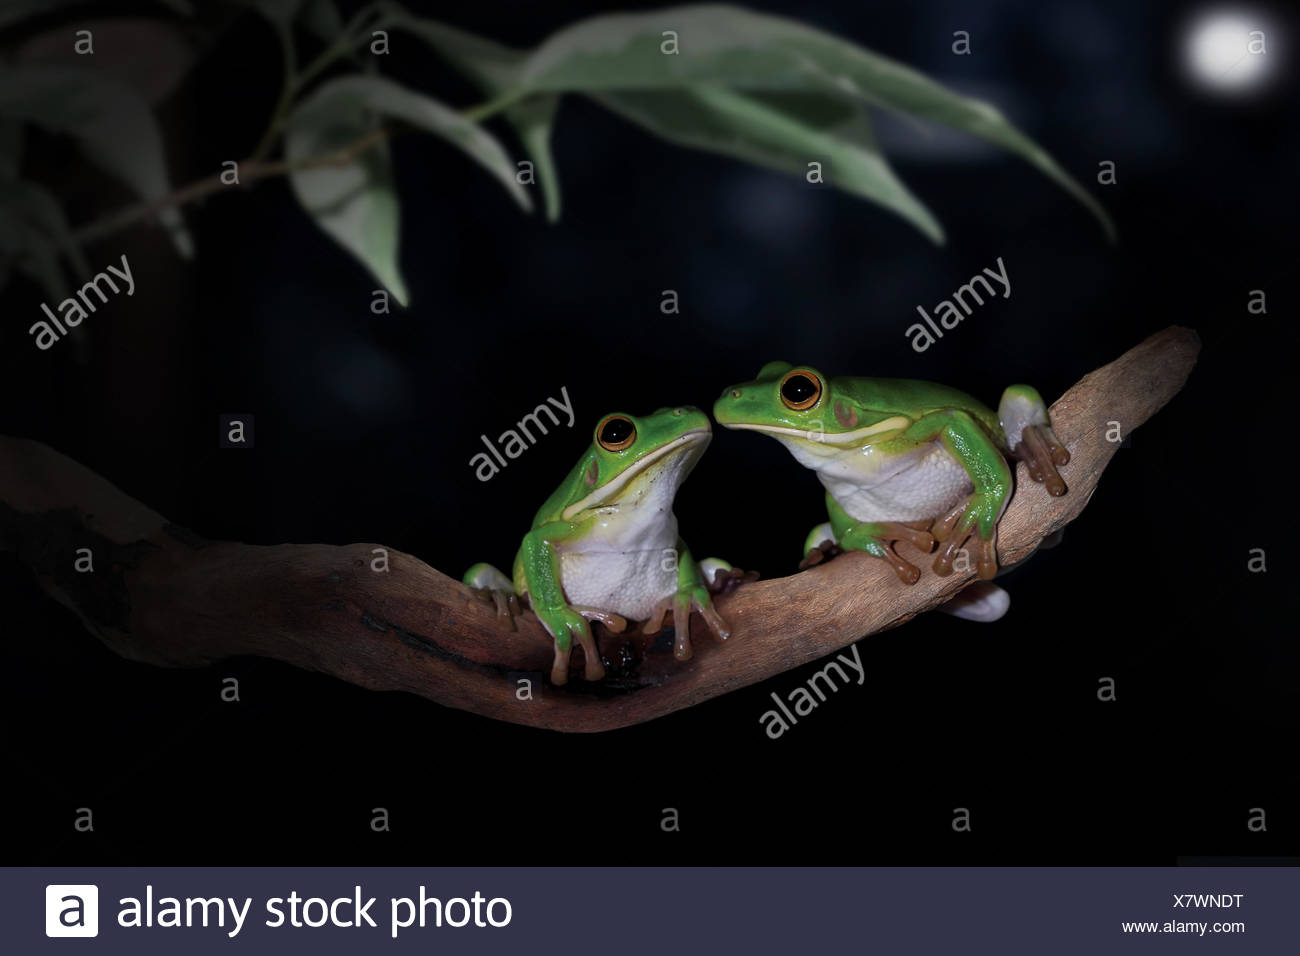 Two frogs sitting face to face in a tree - Stock Image